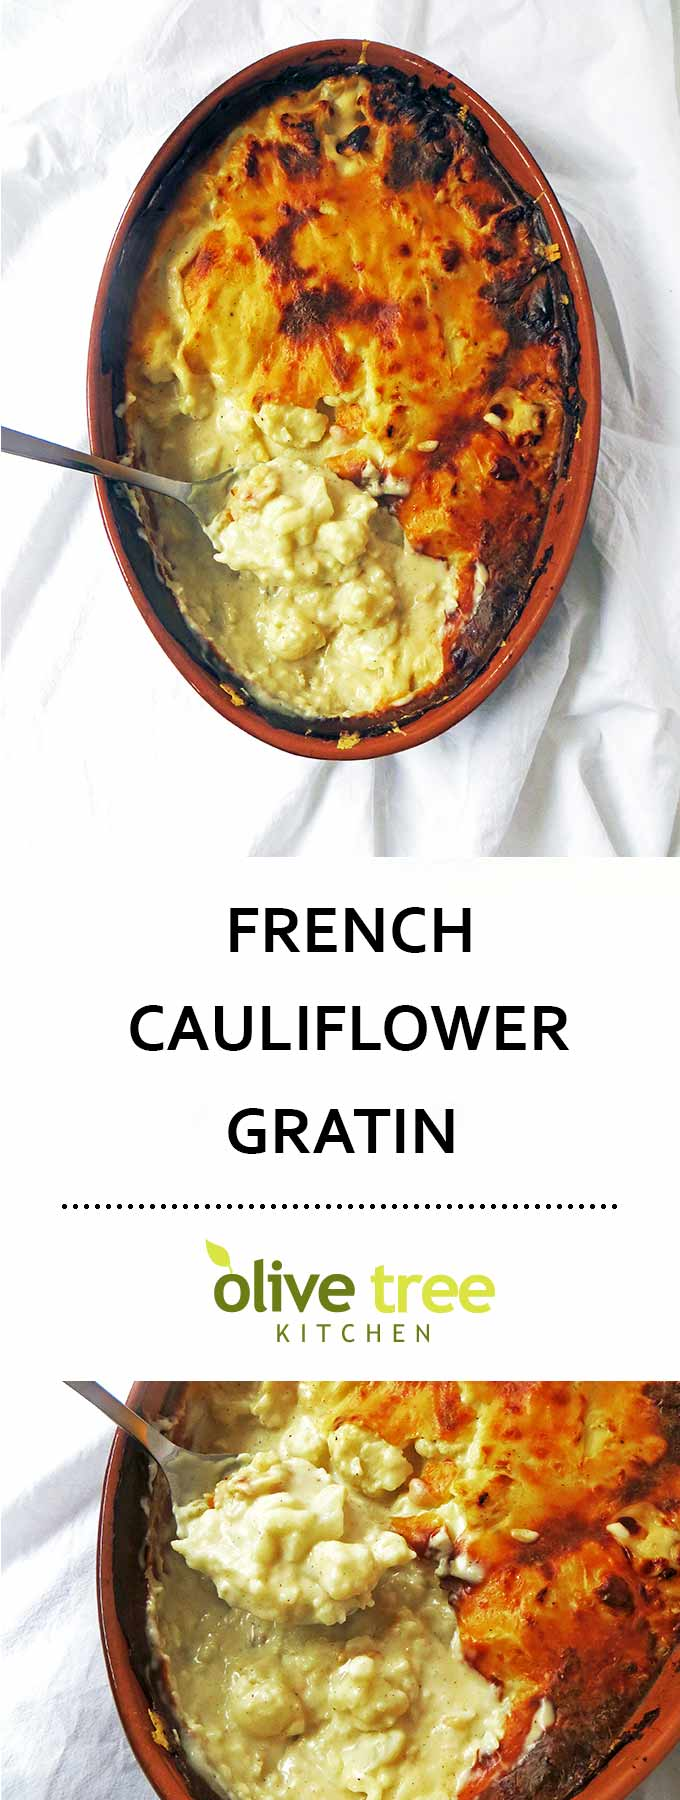 An authentic French Cauliflower Gratin recipe with a deliciously creamy béchamel sauce. An indulgent side dish for a perfect winter meal!